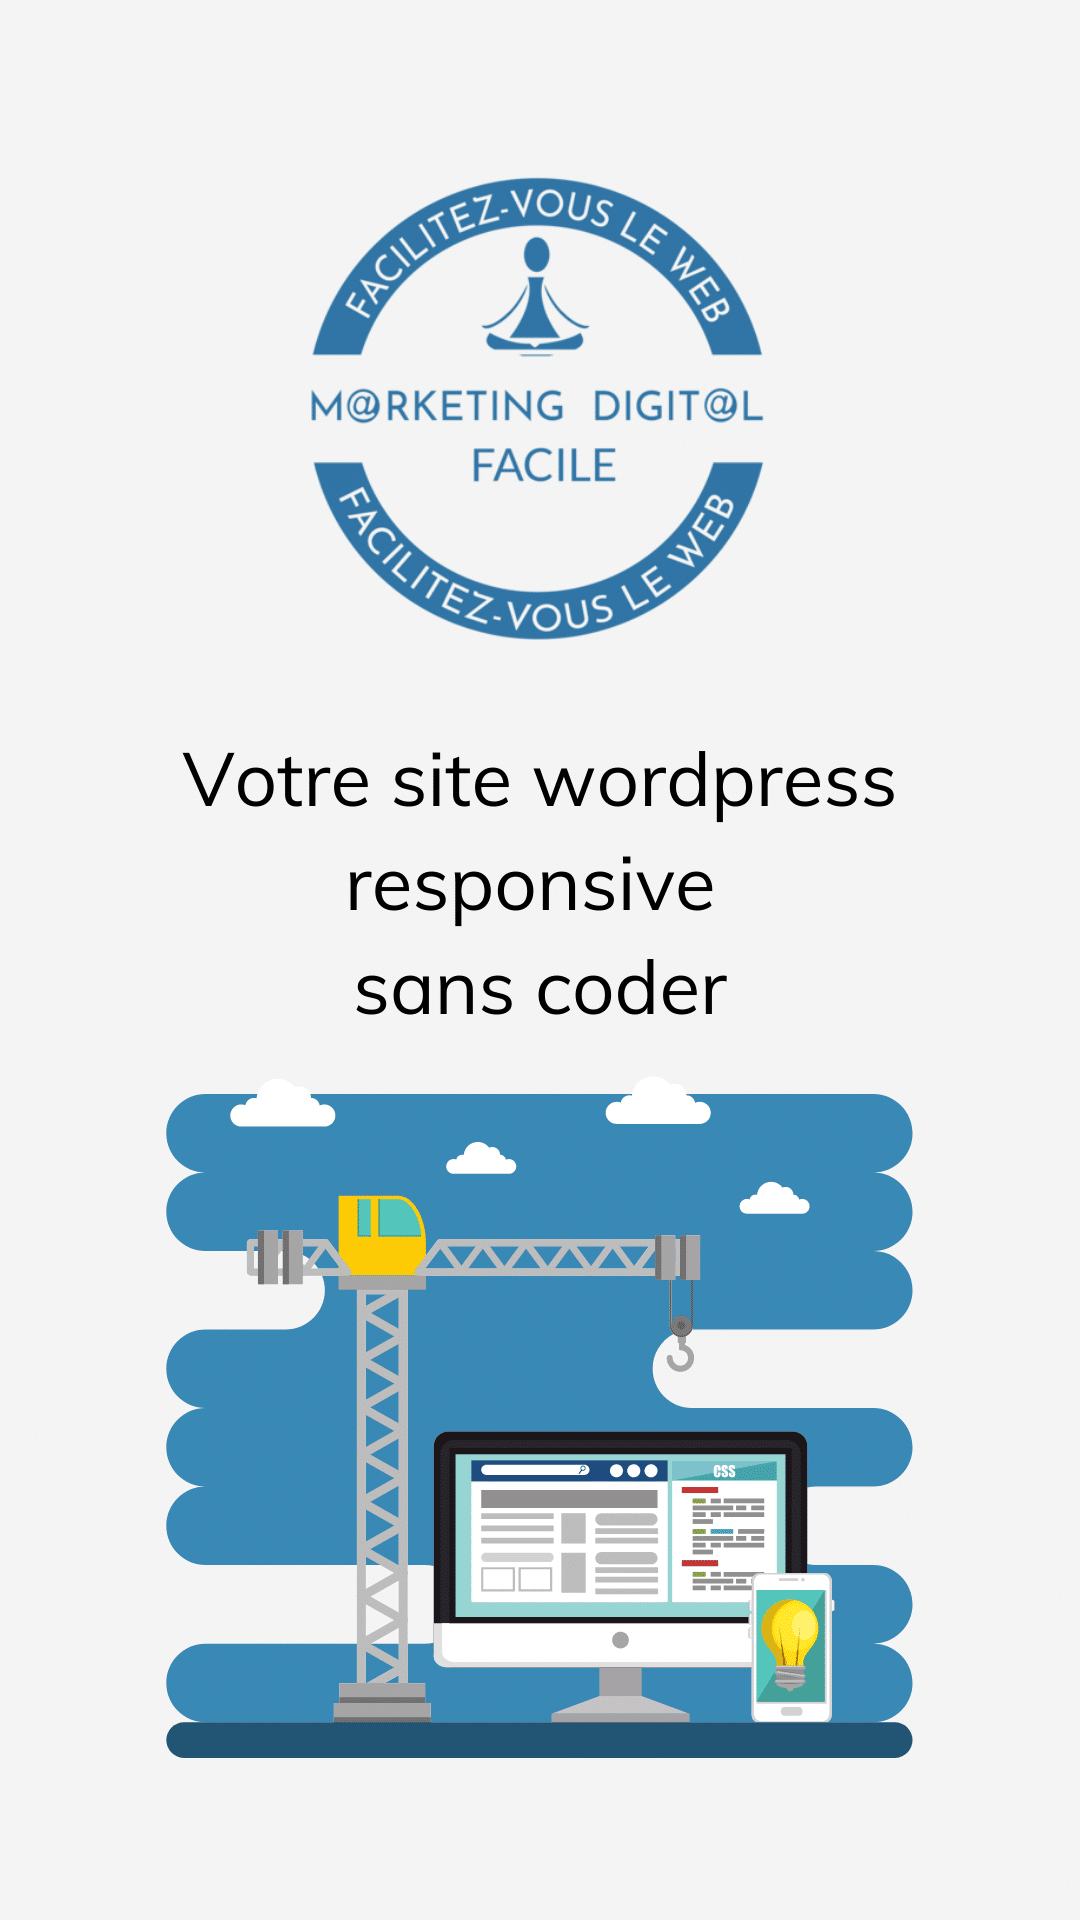 Votre site wordpress responsive sans coder